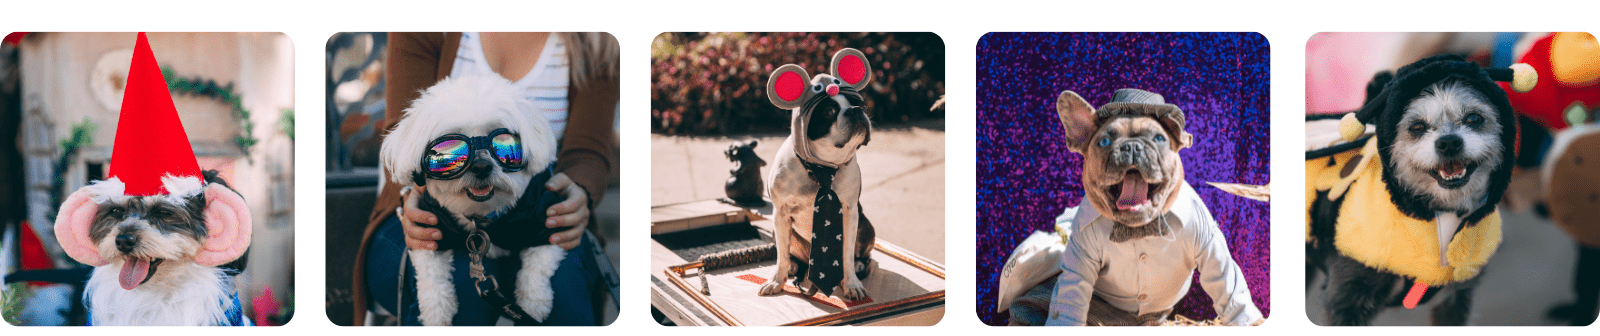 a variety of dogs in costumes